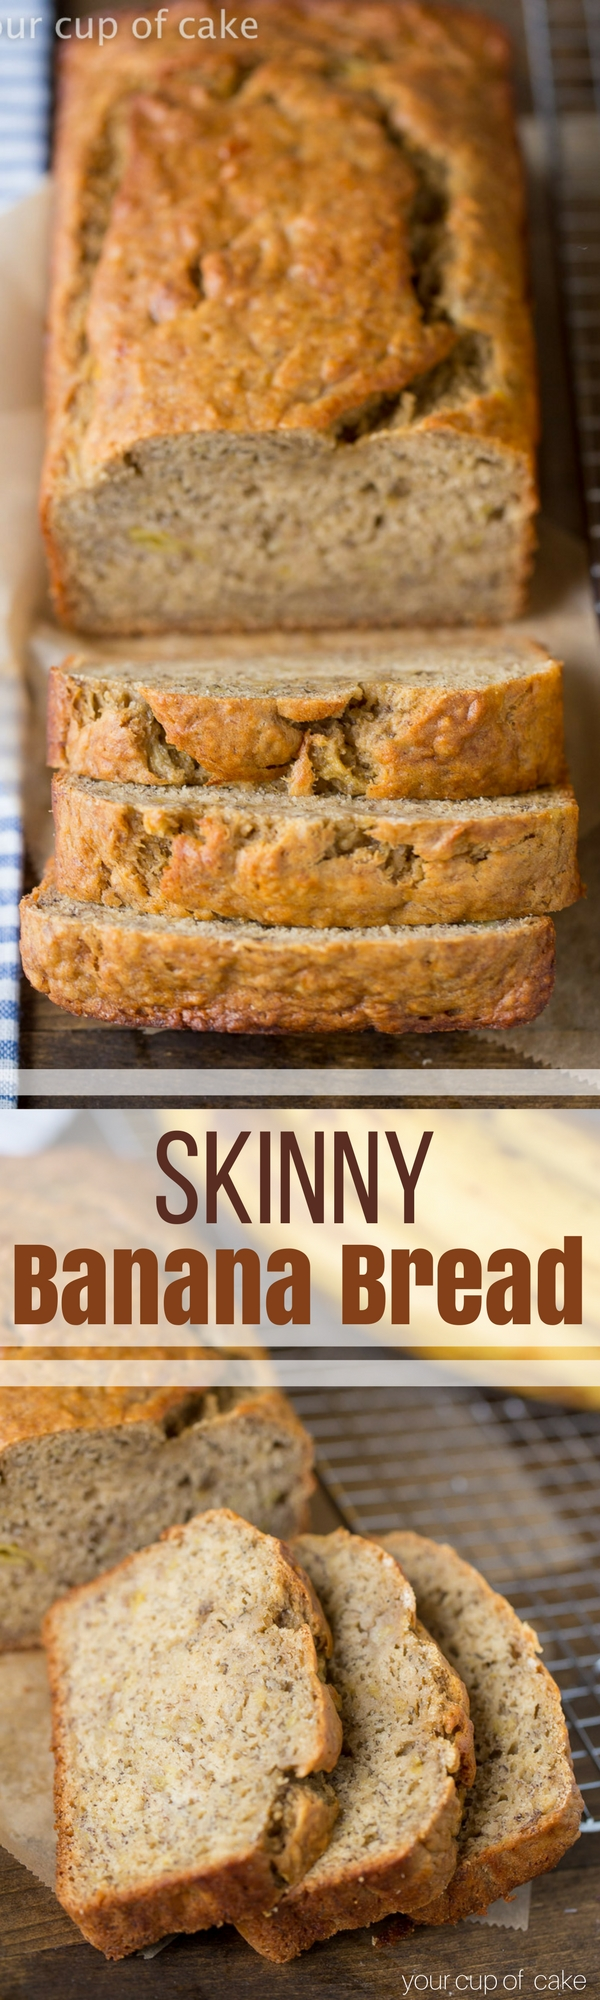 Skinny Banana Bread recipe with low sugar and low fat! I LOVE this recipe!